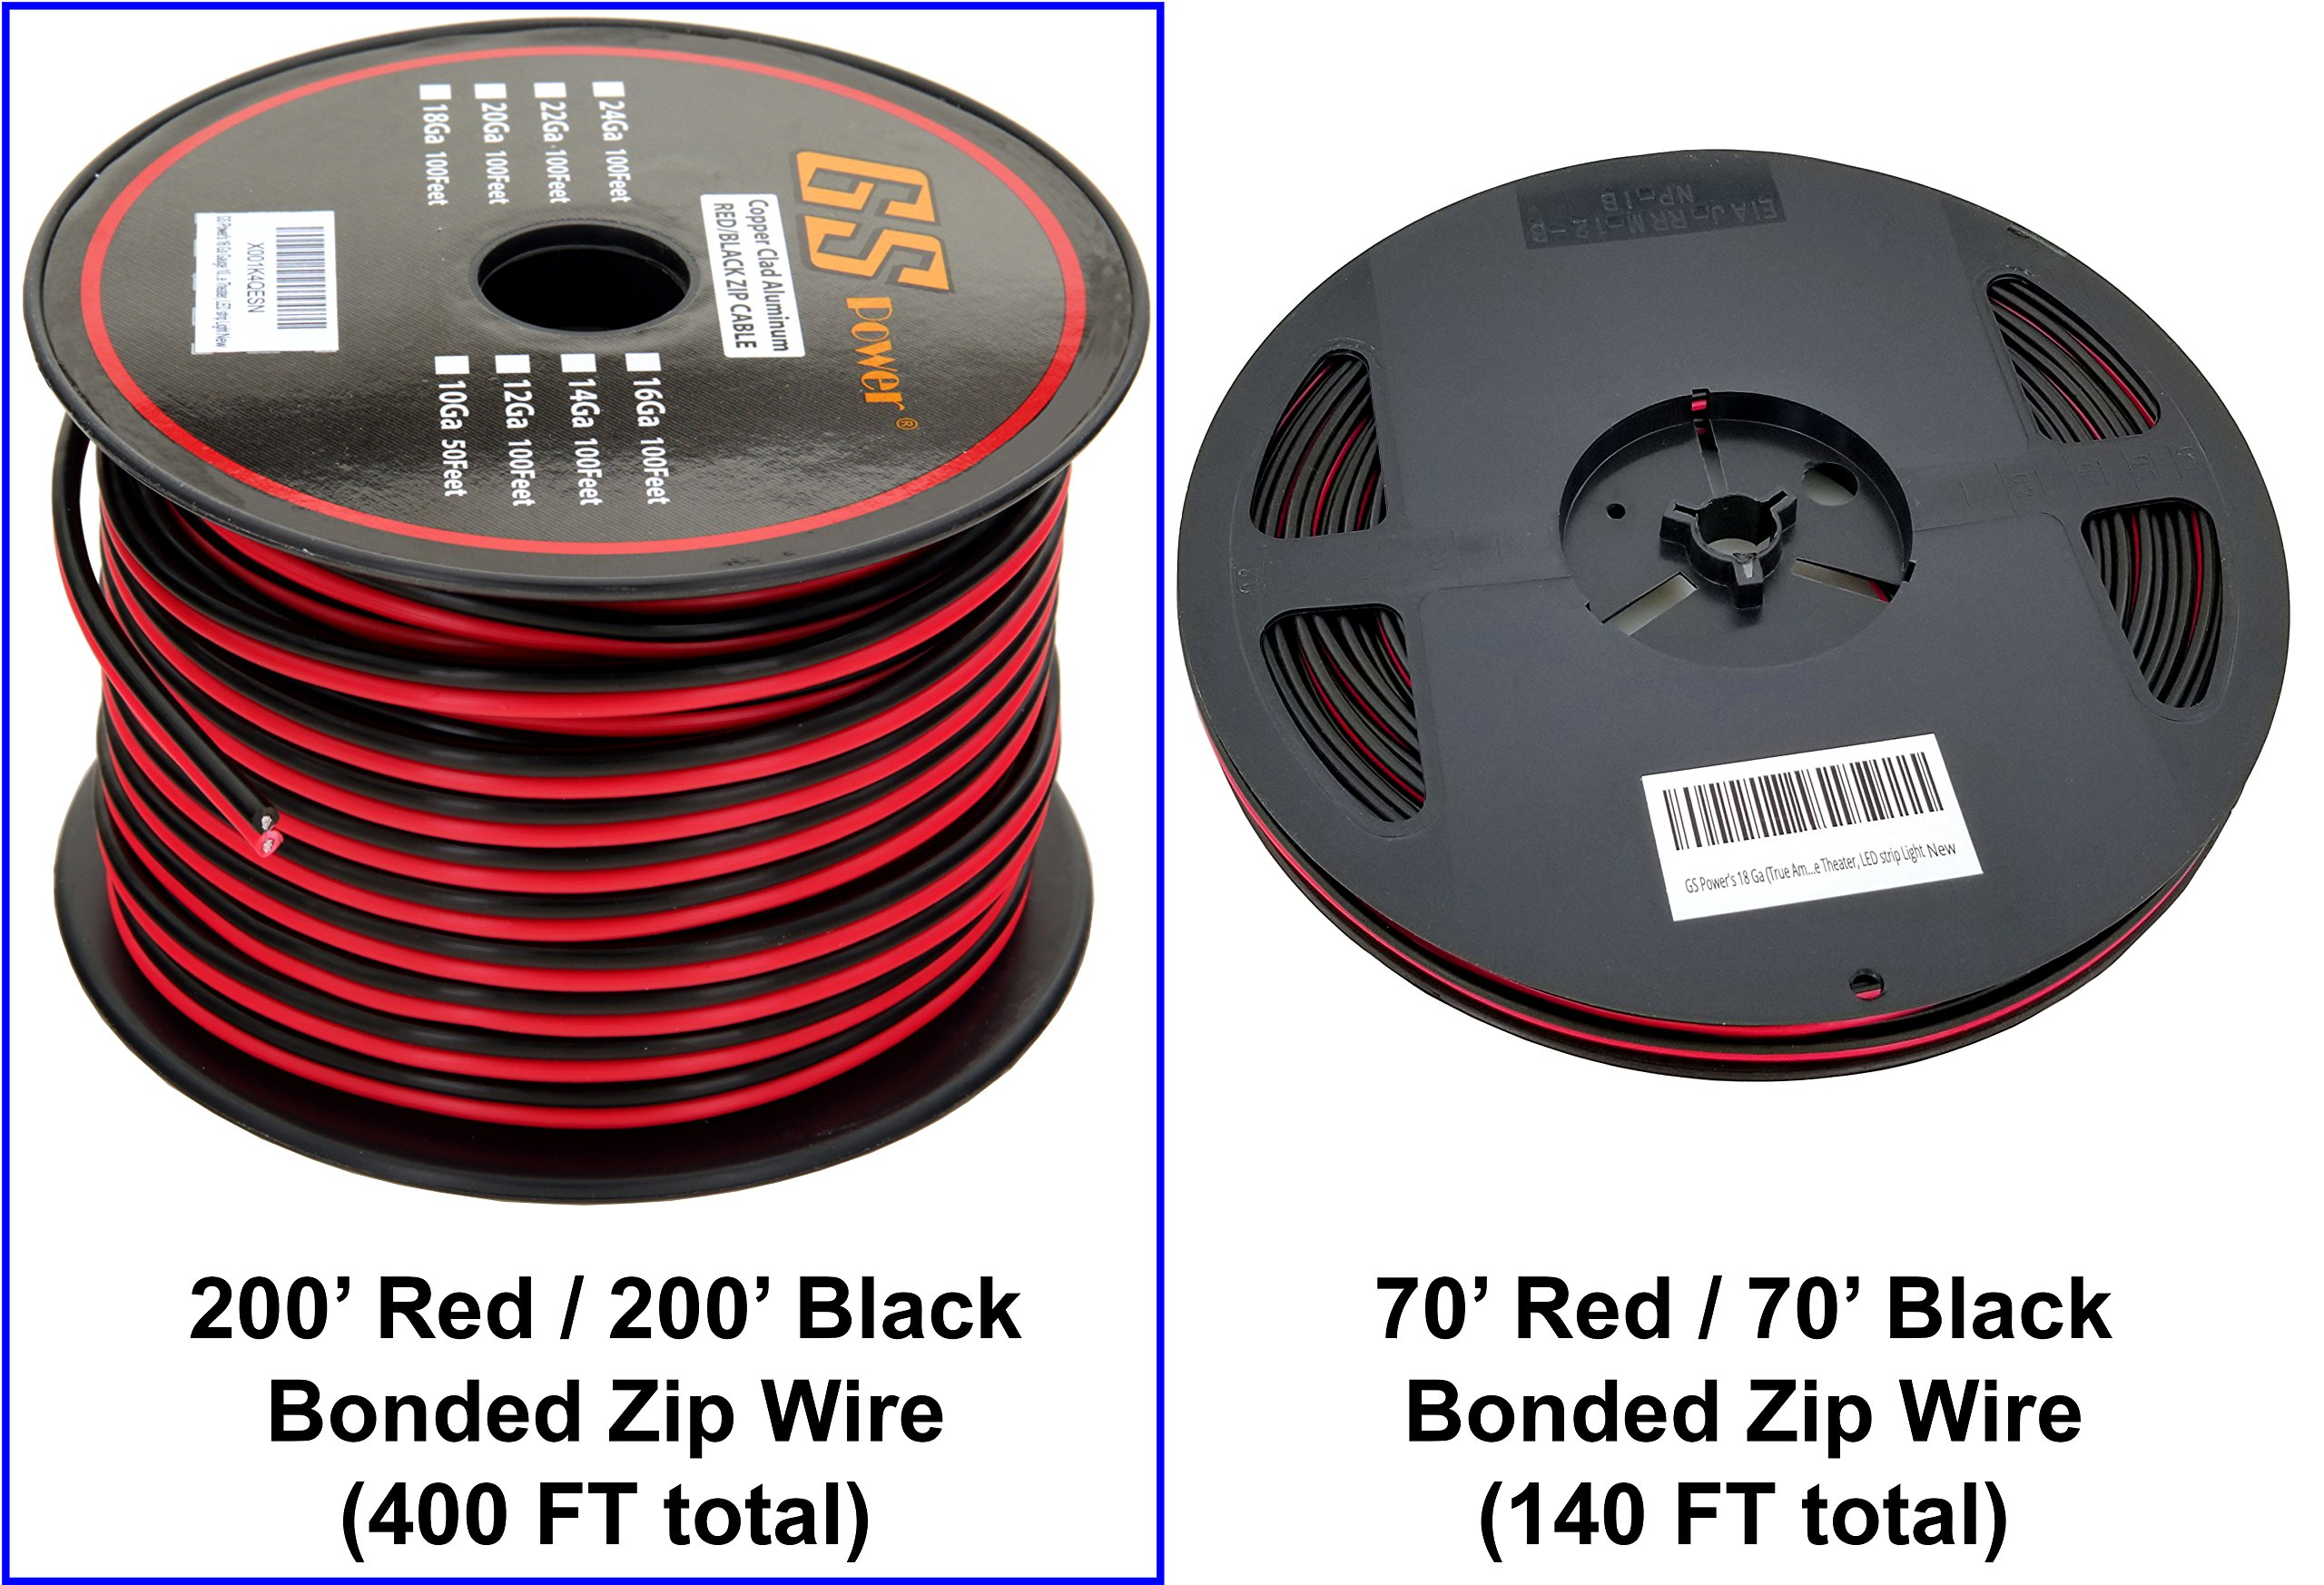 GS Power 18 Ga Gauge 200 Feet CCA Copper Clad Aluminum Red/Black Bonded Zip Cord Speaker Cable for Model Train Car Audio Radio Amplifier Remote Trailer Harness Home Theater LED Light Wiring by GS Power